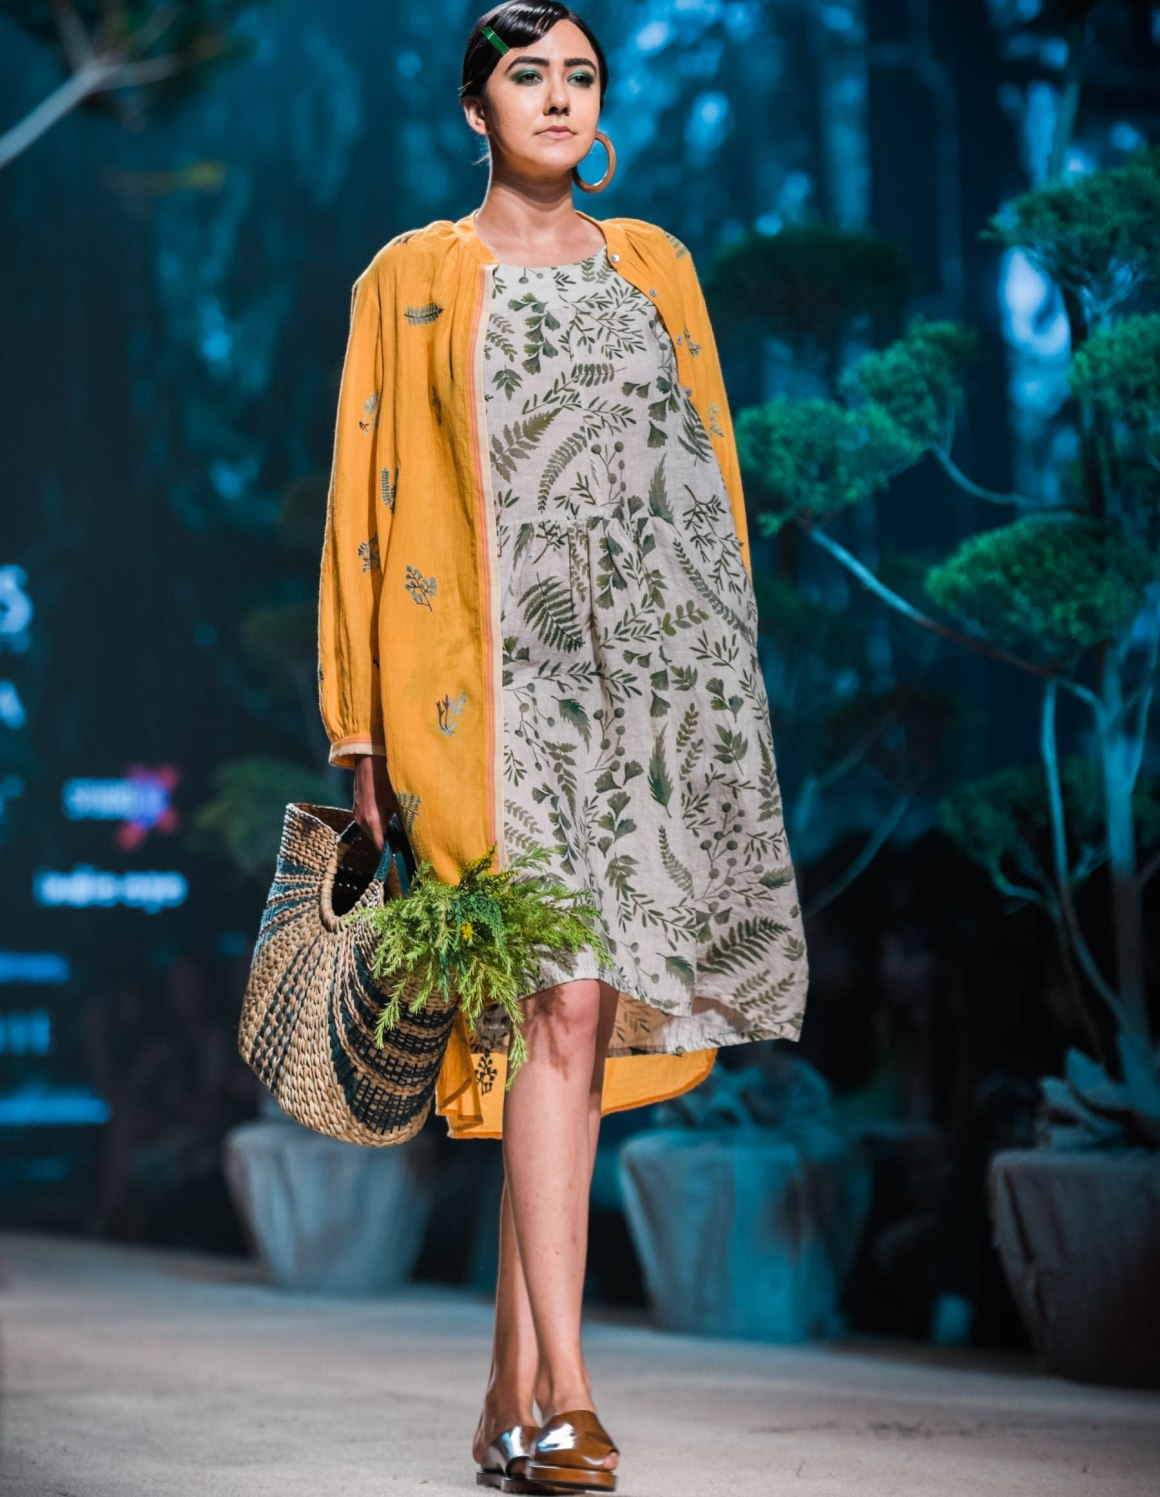 Naina Redhu, Naina.co, Payal Pratap, Fashion Designer, FDCI, Lotus MakeUp India Fashion Week Spring Summer 2019, LMIFWSS19, LMIFW, India Fashion Week, Fashion Week Delhi, MadeInIndia, Made In India, EyesForFashion, Professional Photographer, Blogger, Fashion Photographer, Lifestyle Photographer, Luxury Photographer, Delhi Photographer, Gurgaon Photographer, Delhi Blogger, Gurgaon Blogger, Indian Blogger